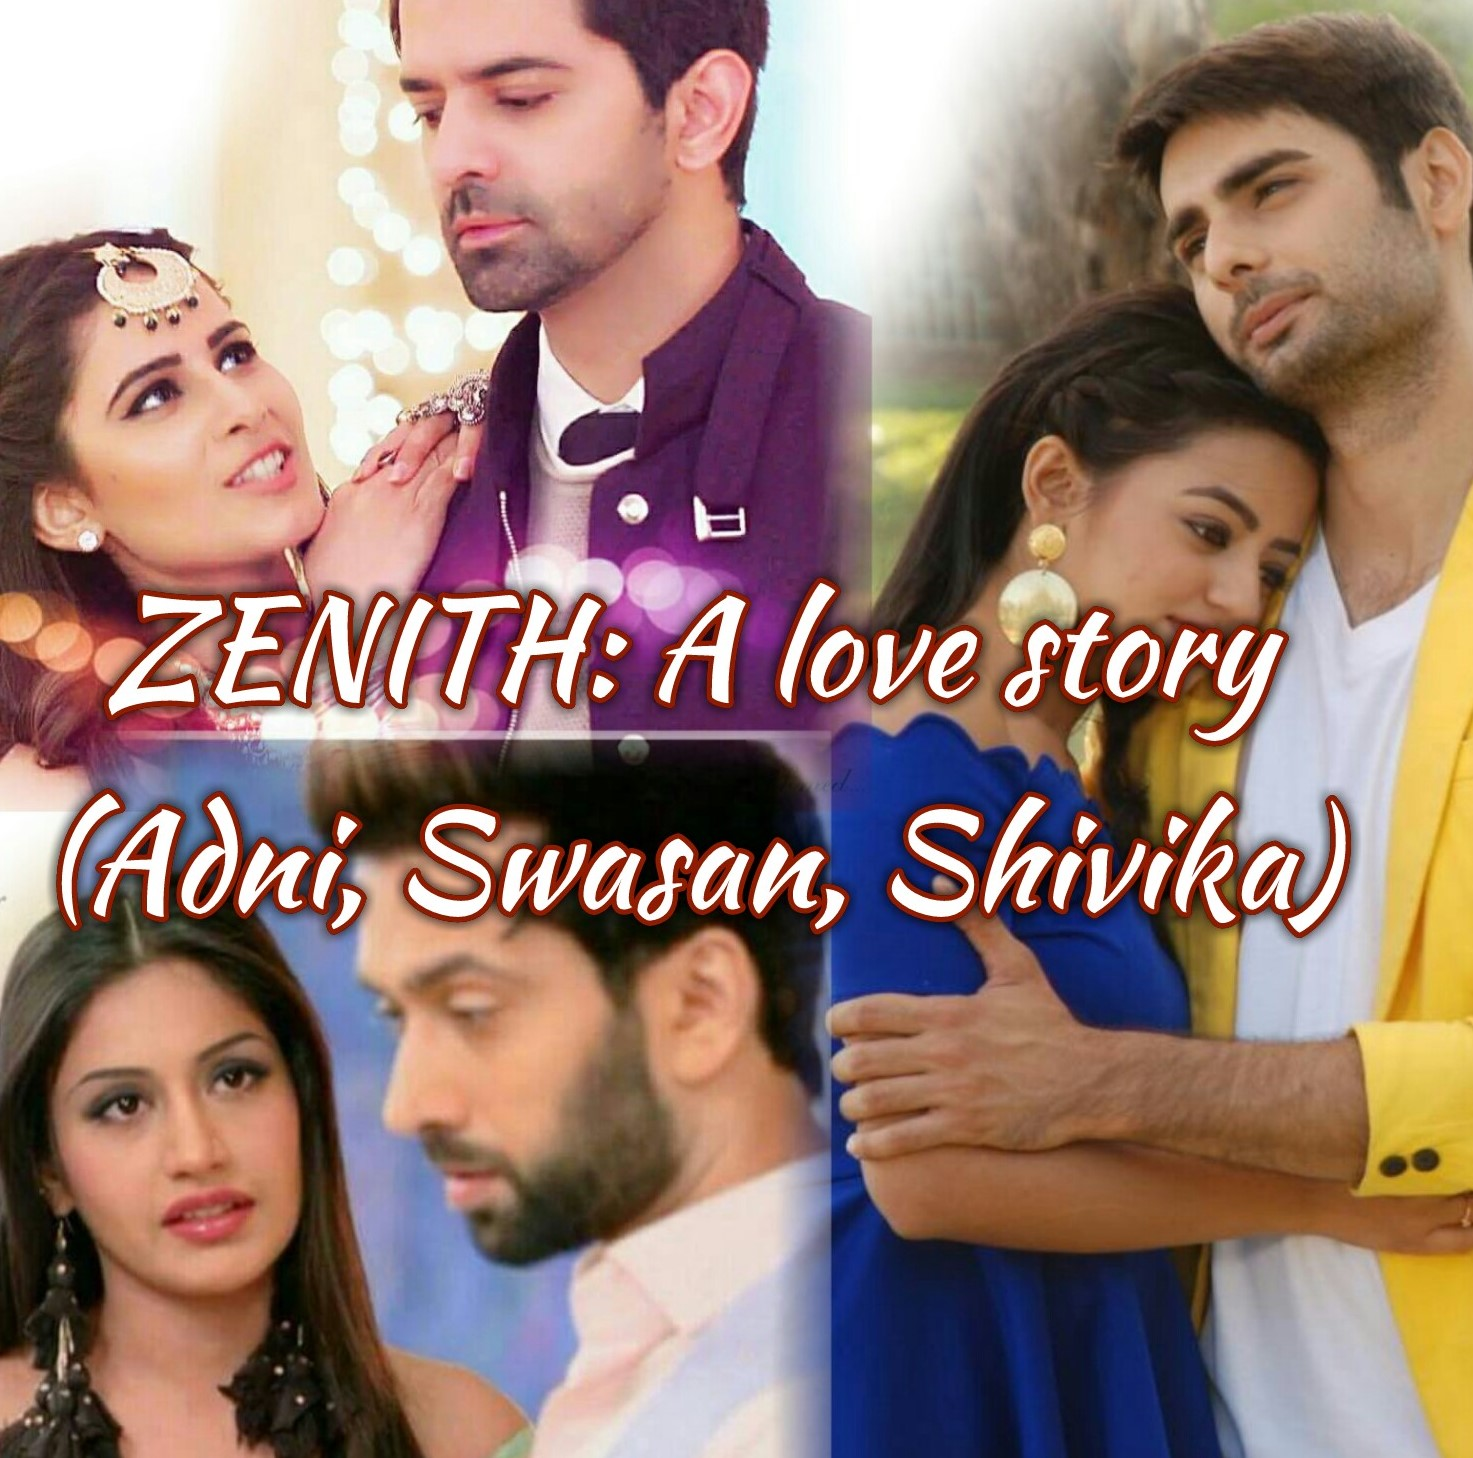 ZENITH: A love story (Adni, Swasan, Shivika) Introduction - Telly